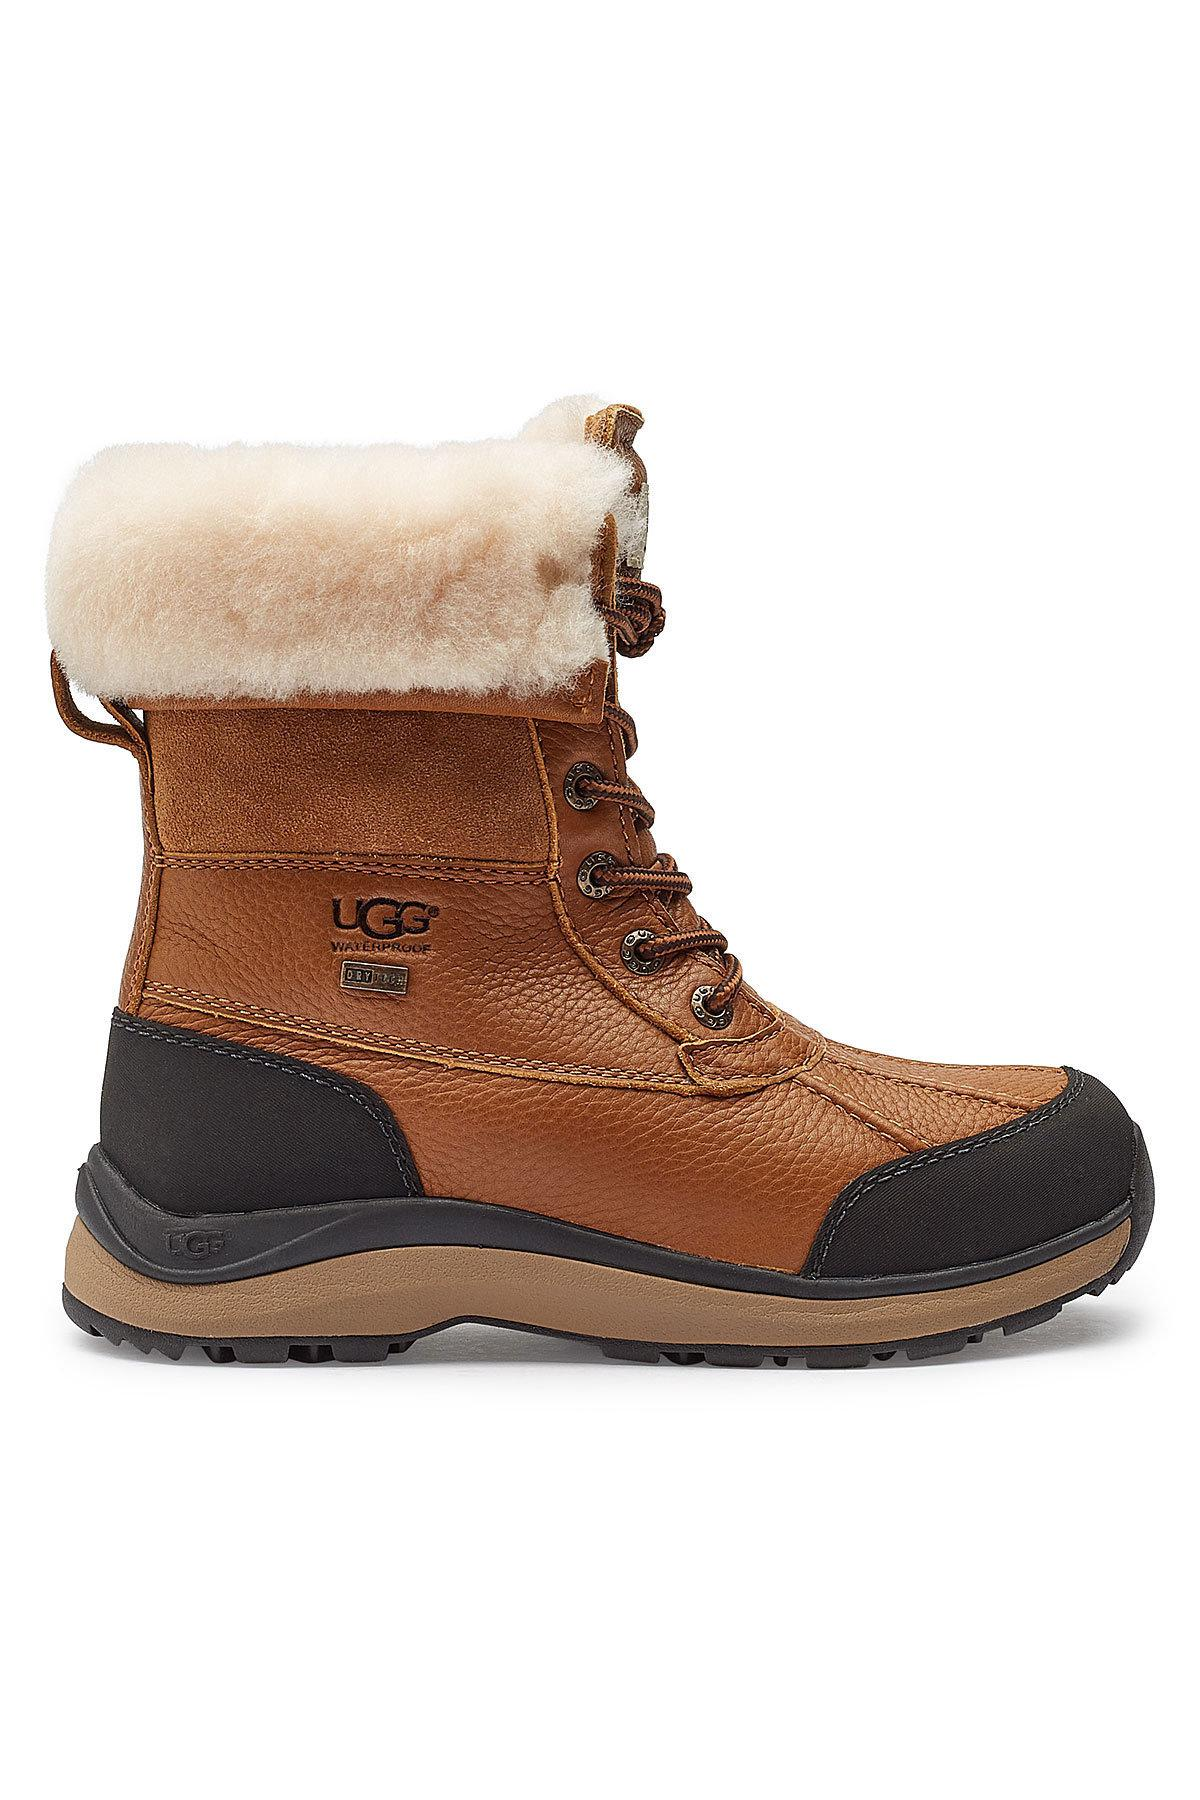 UGG Adirondack Ankle Boots With Suede, Leather And Shearling